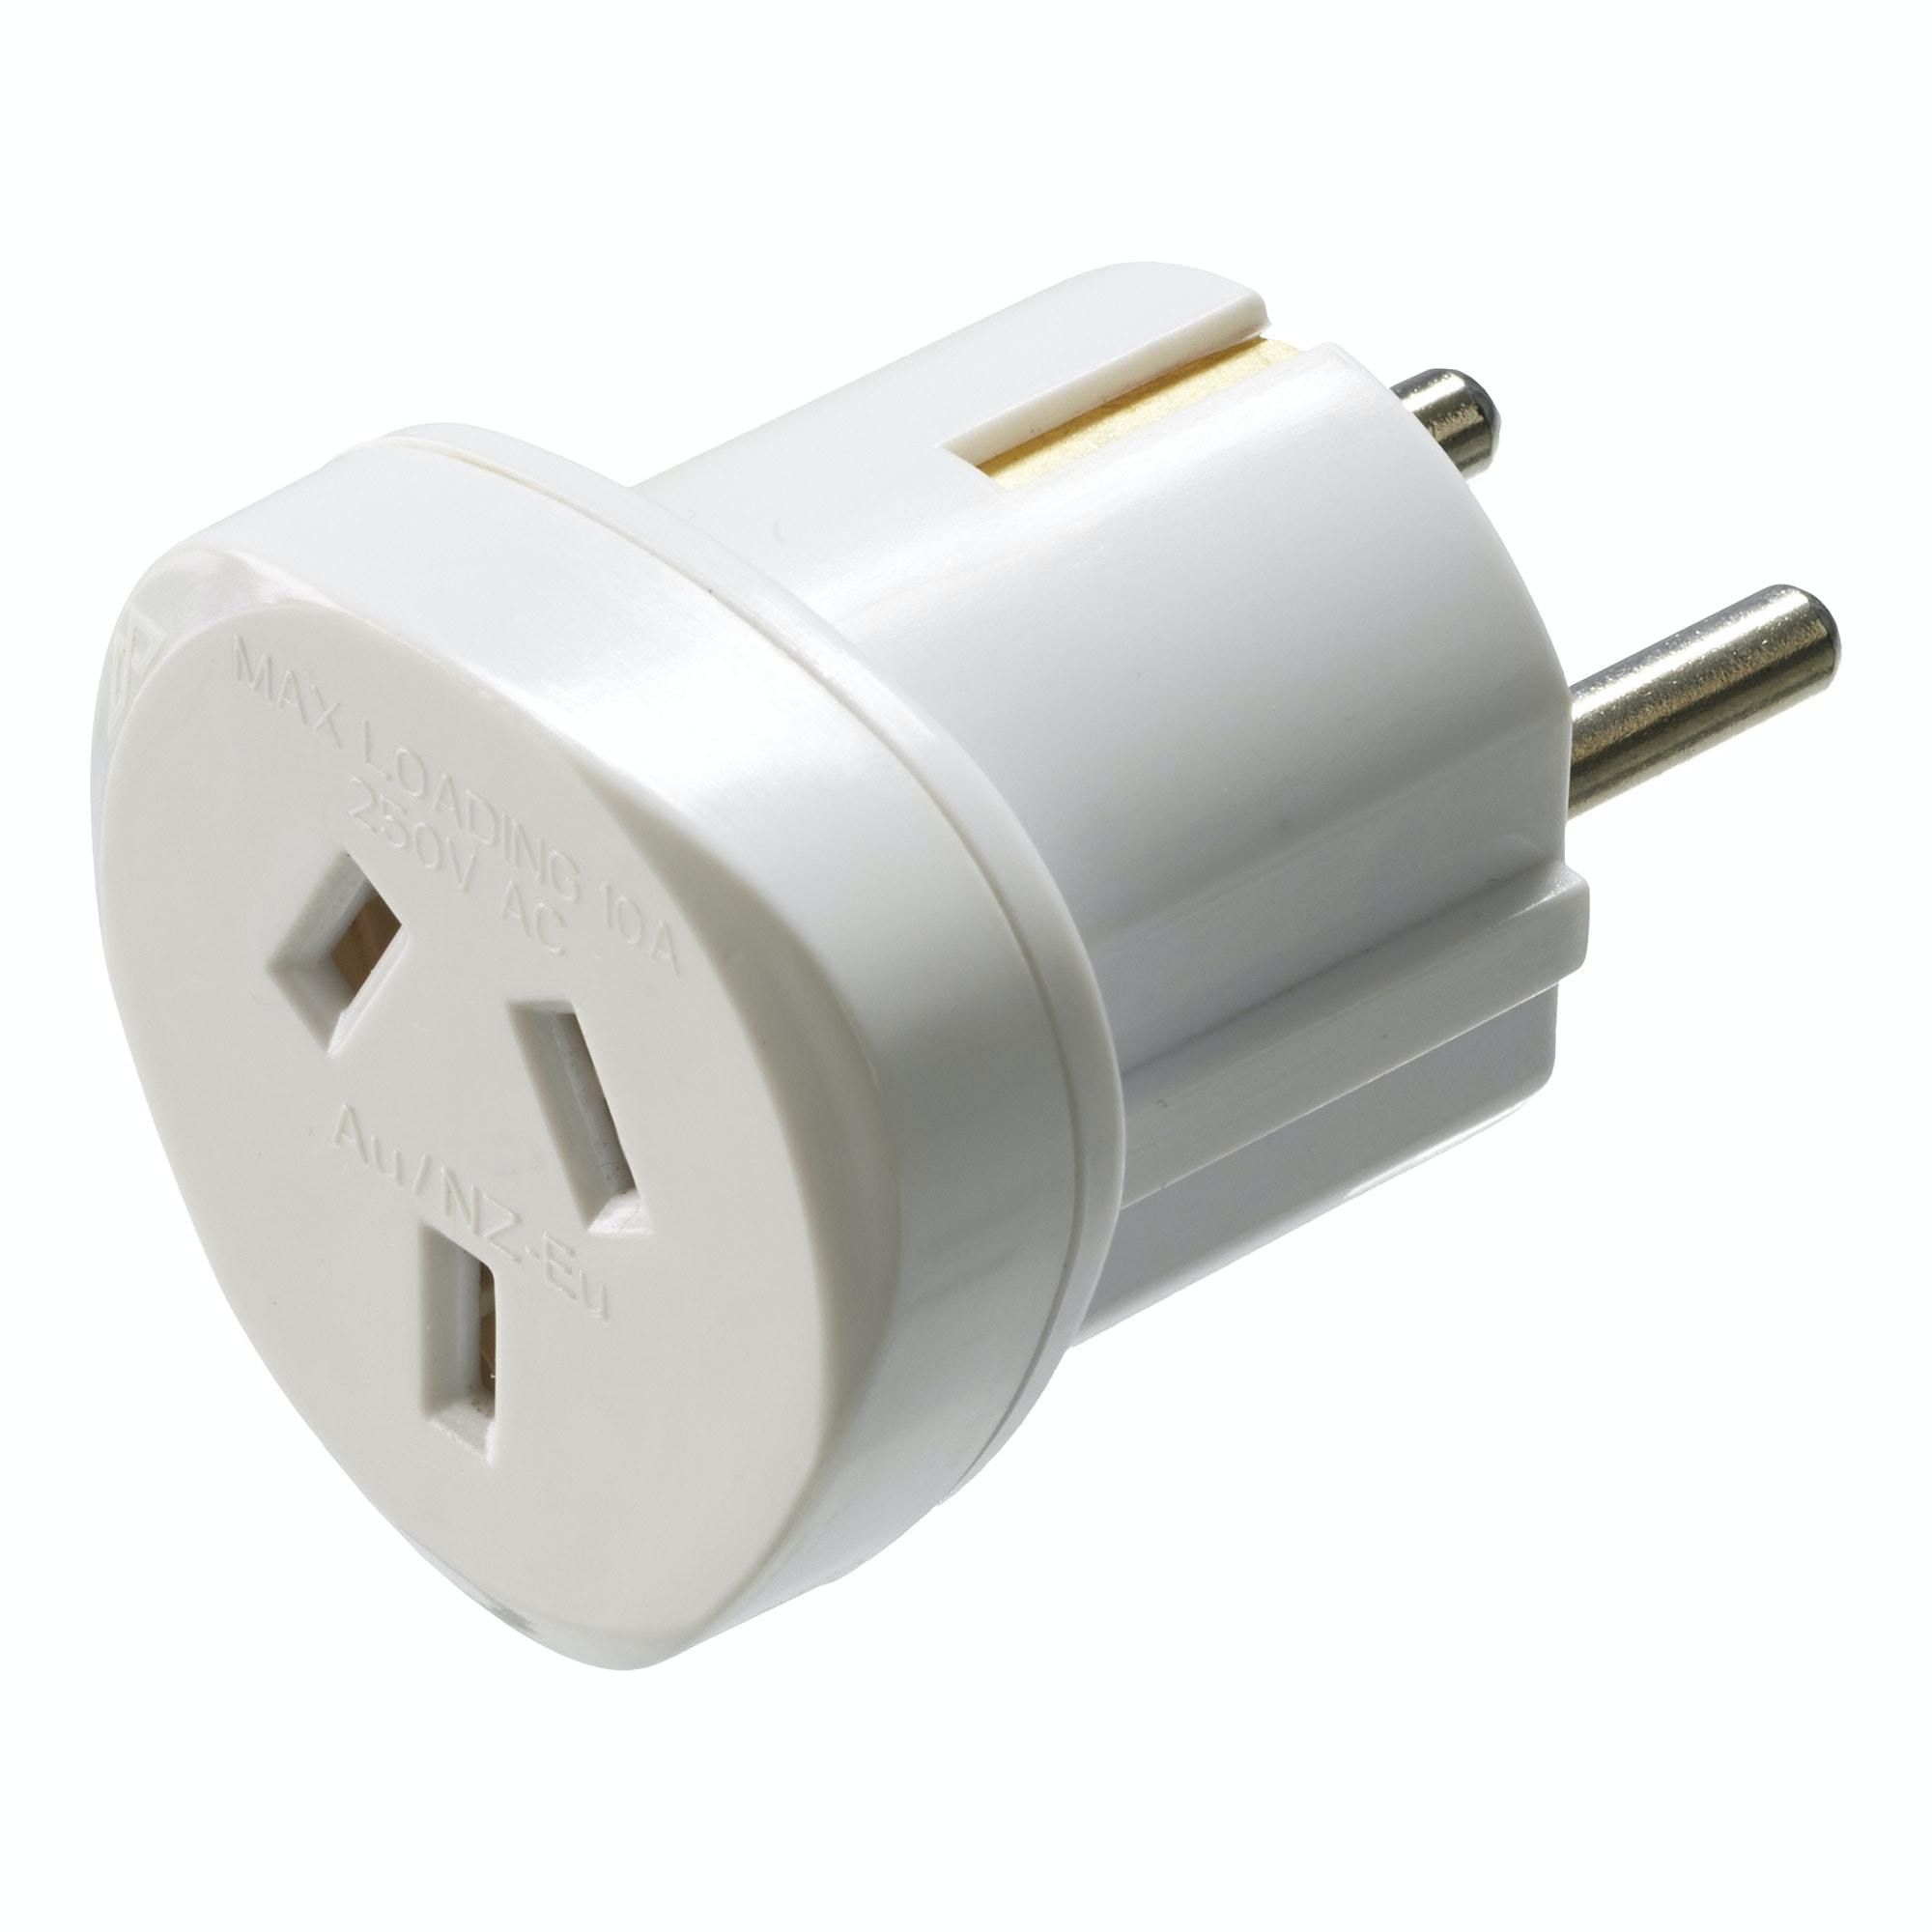 Go Travel Worldwide Adaptor for European Plugs CLEARANCE PRICE